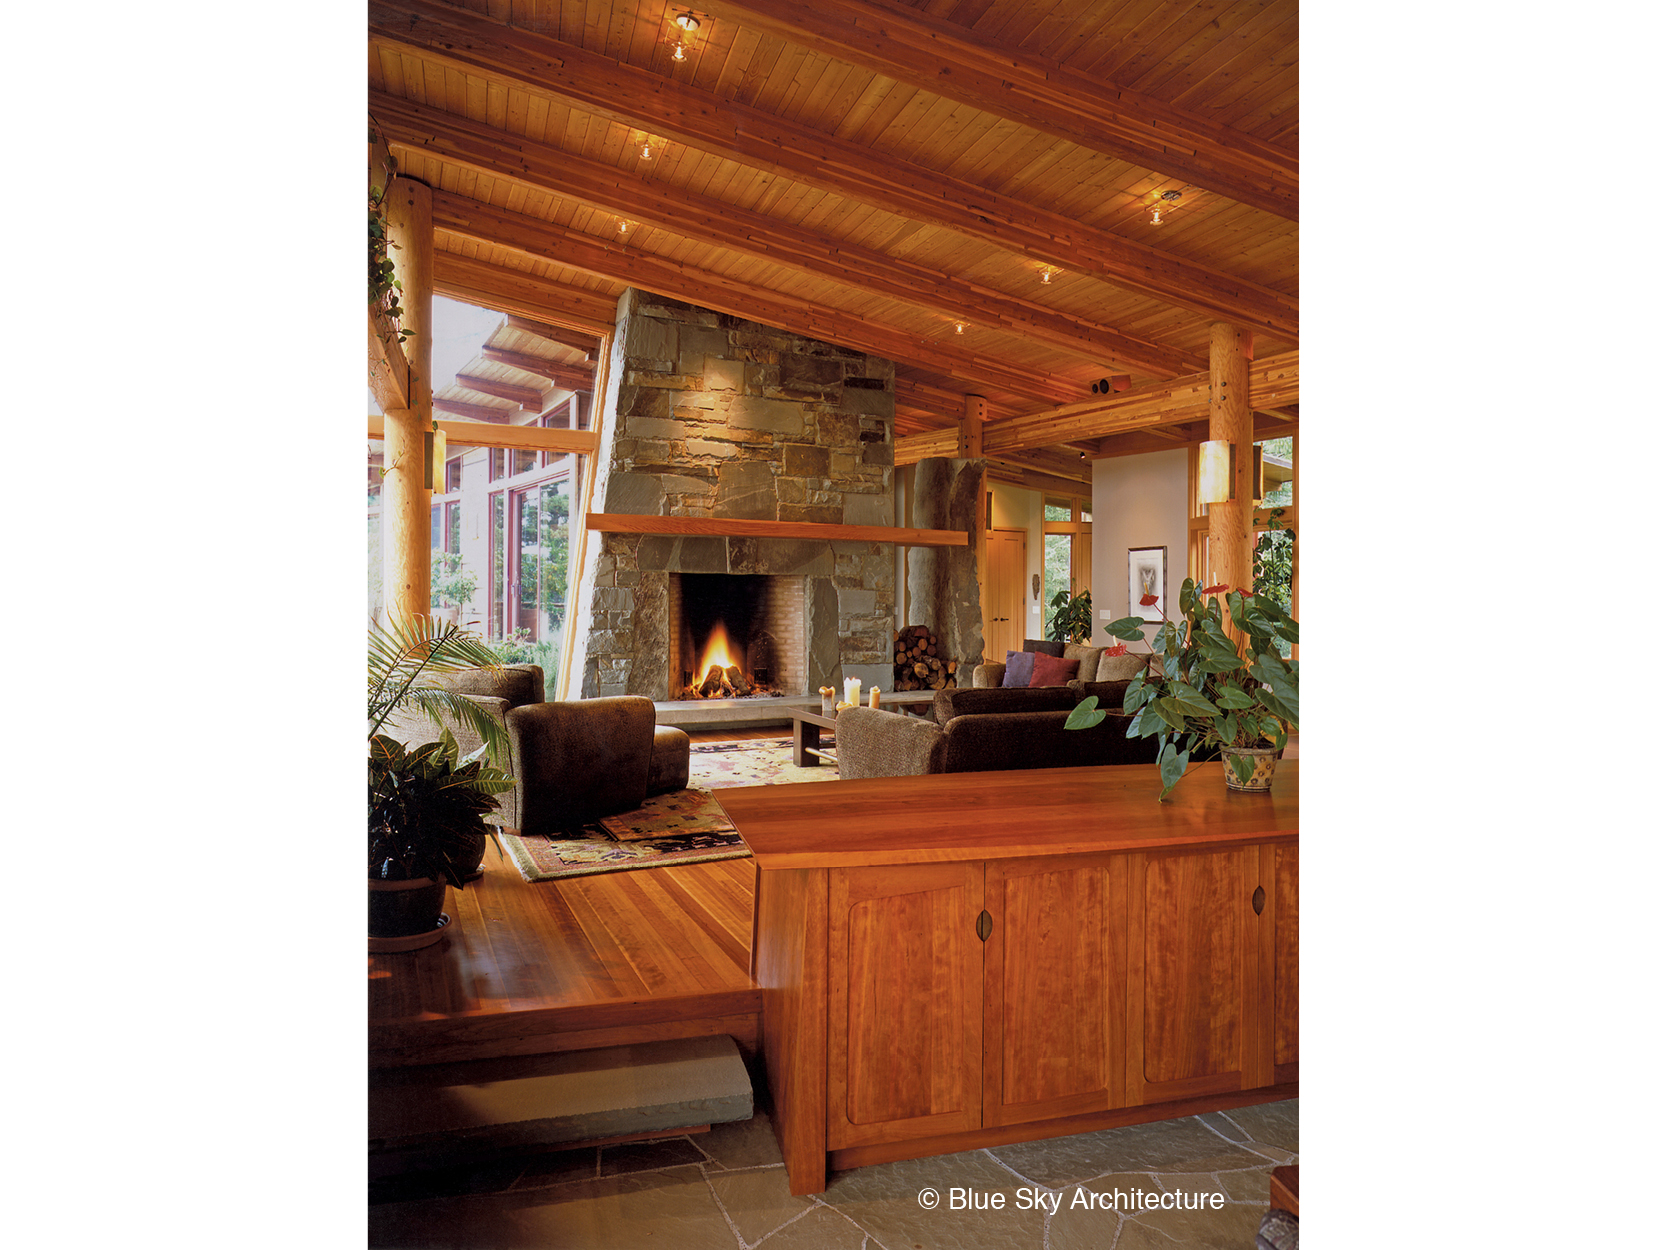 Sandstone slab fireplace with wood rafter ceiling in Hill House